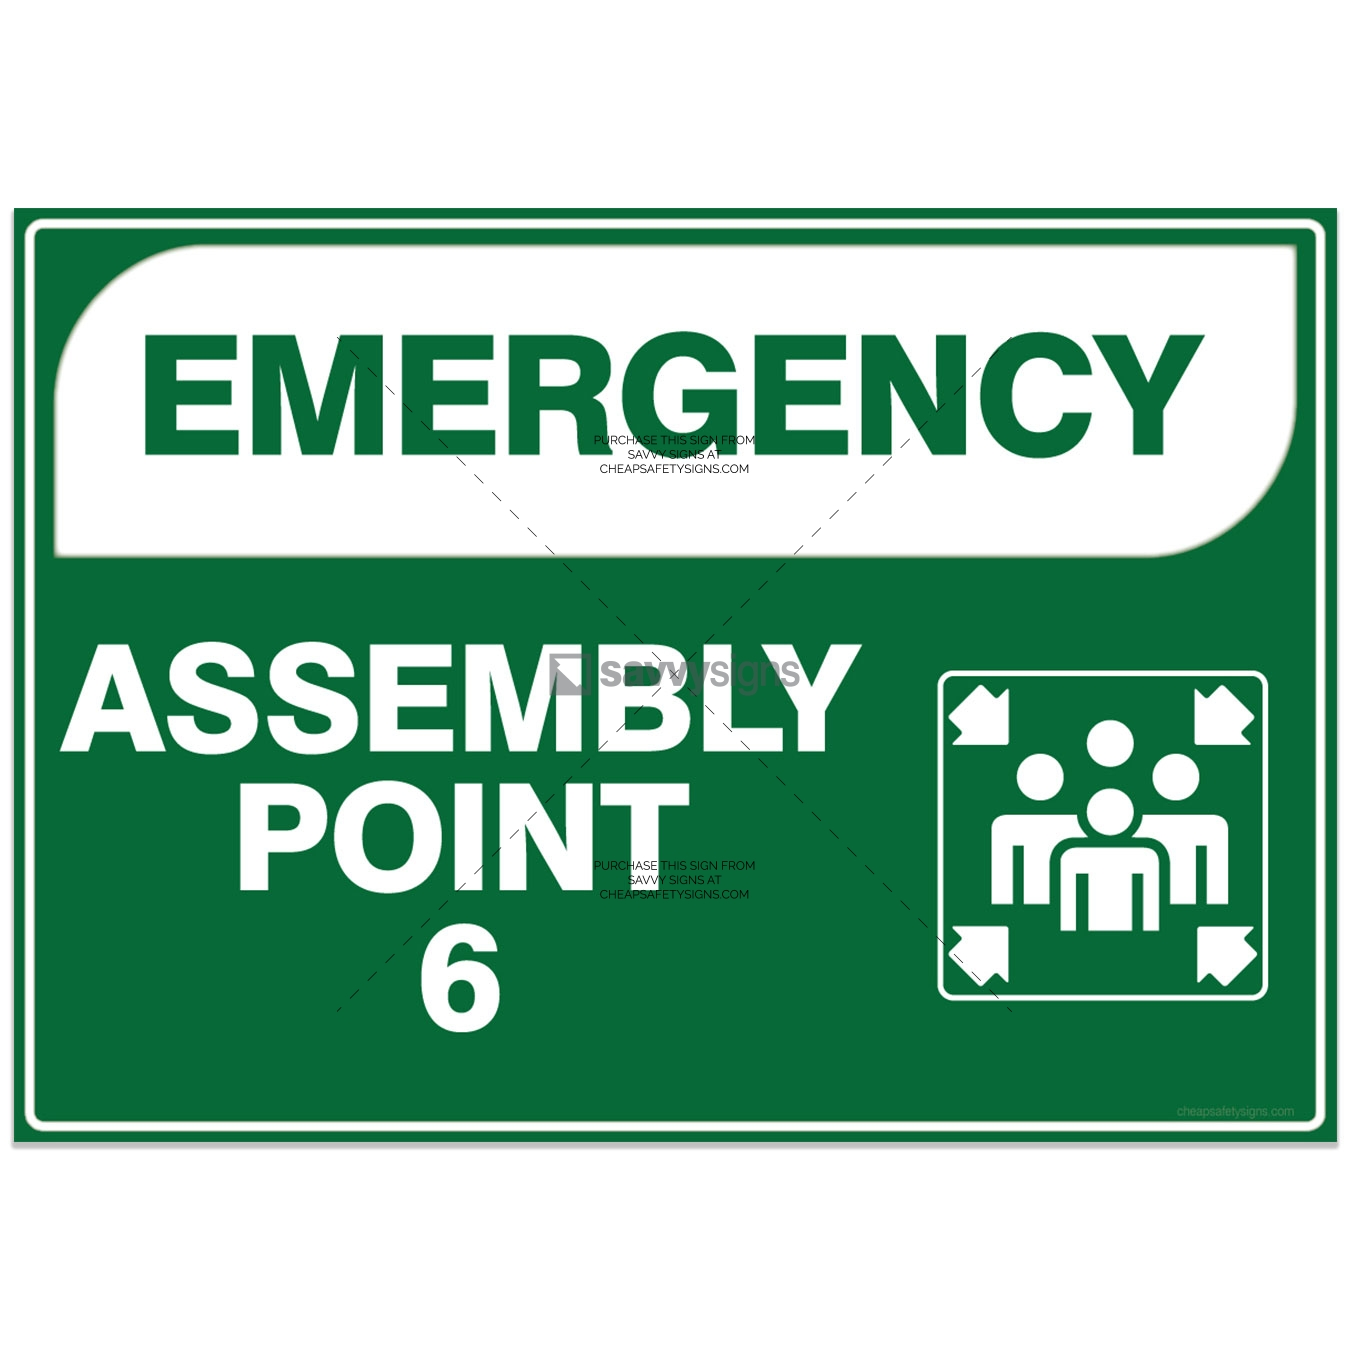 SSEME3008-EMERGENCY-Workplace-Safety-Signs_Savvy-Signs_v3